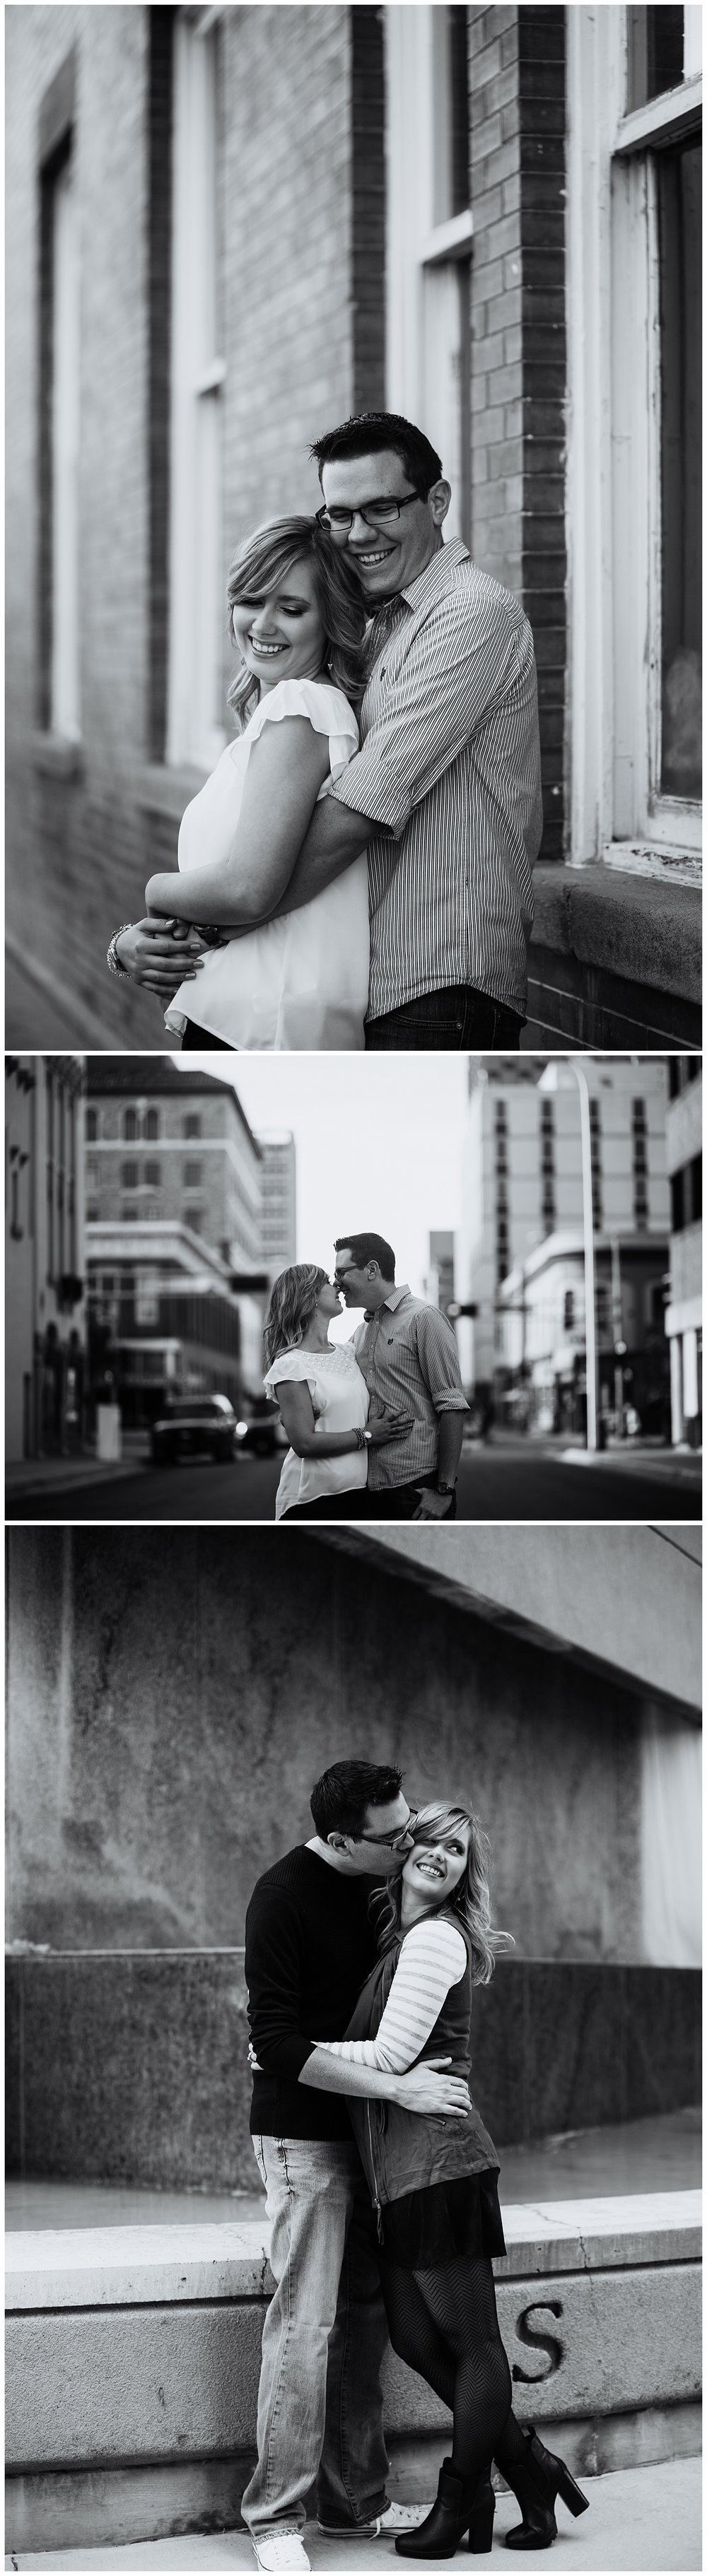 amanda-and-justin_downtown-albuquerque-engagement-photos_montano-open-space-albuquerque_albuquerque-engagement-photographer_0008.jpg